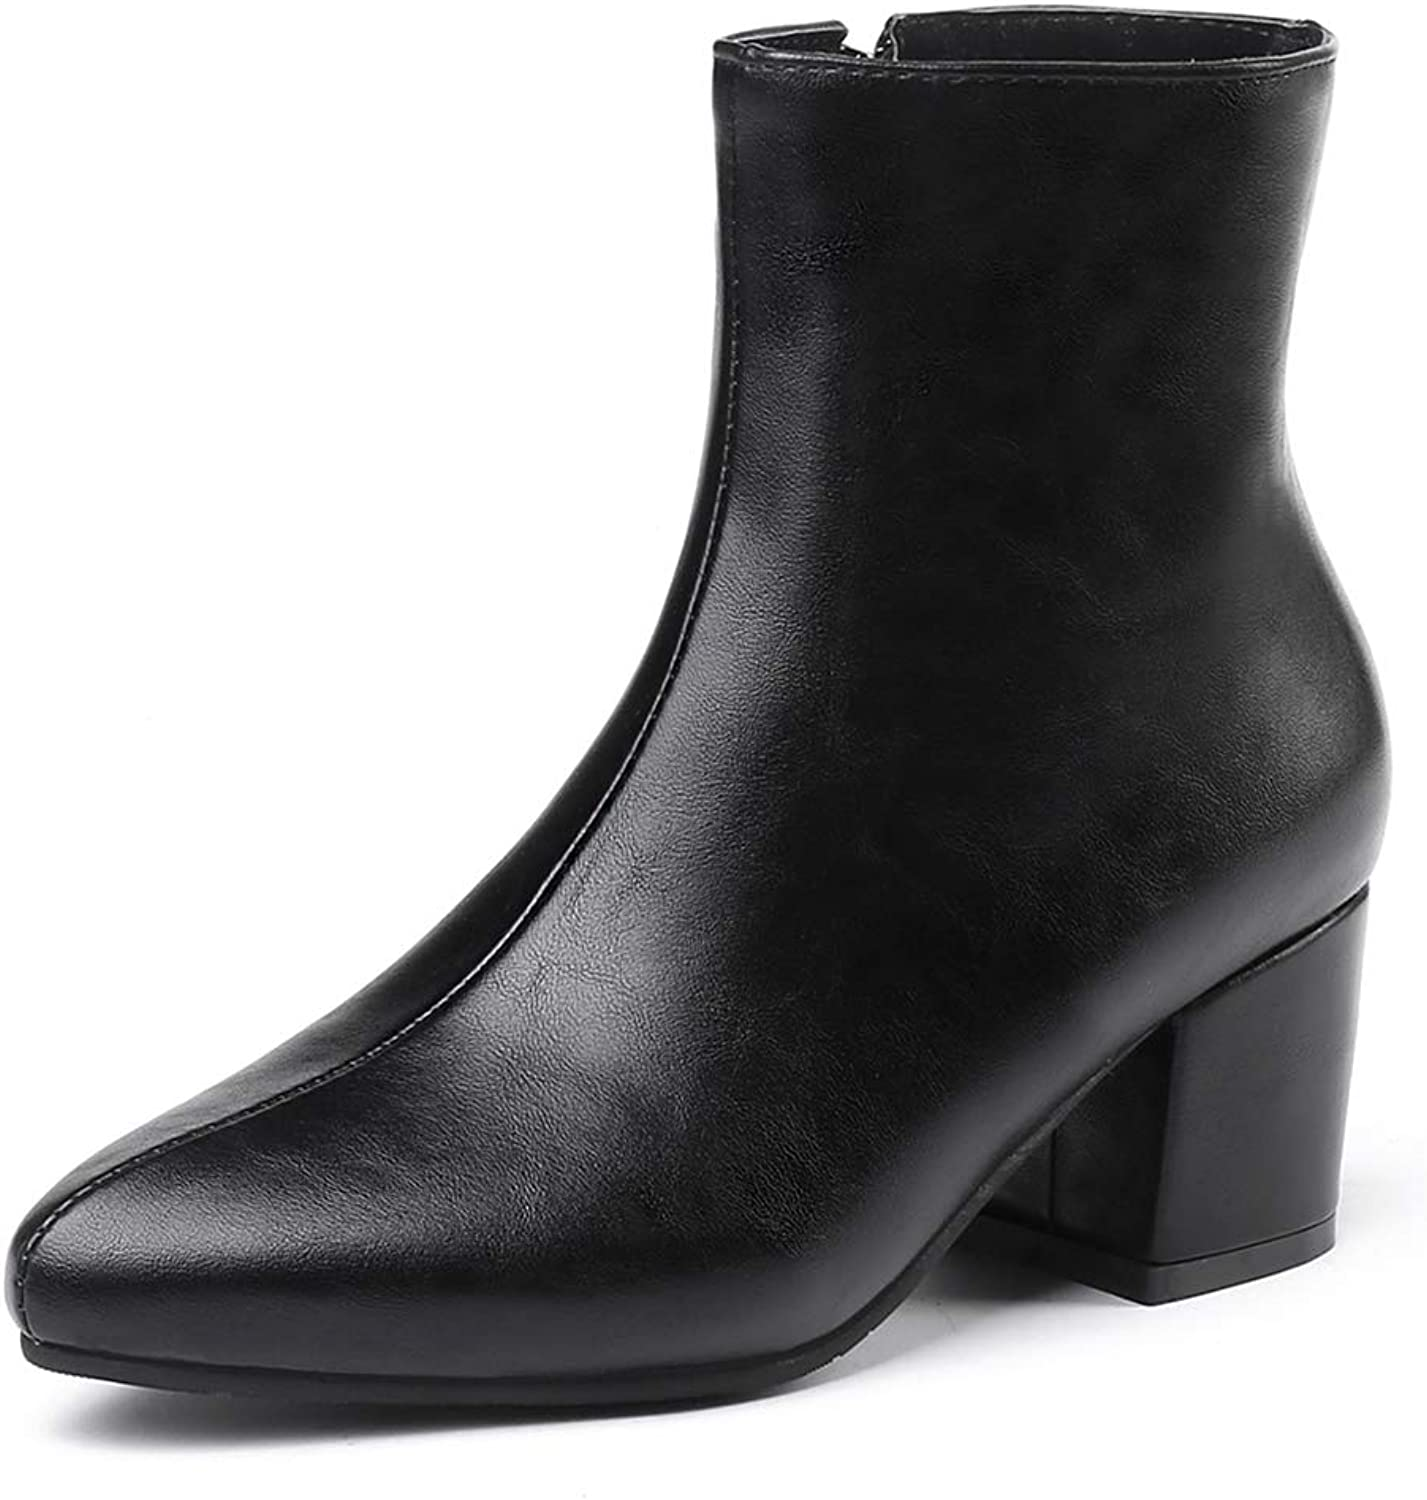 Chunky High Heels Ankle Boots Woman Zip Fur Warm Winter Pointed Toe Booties